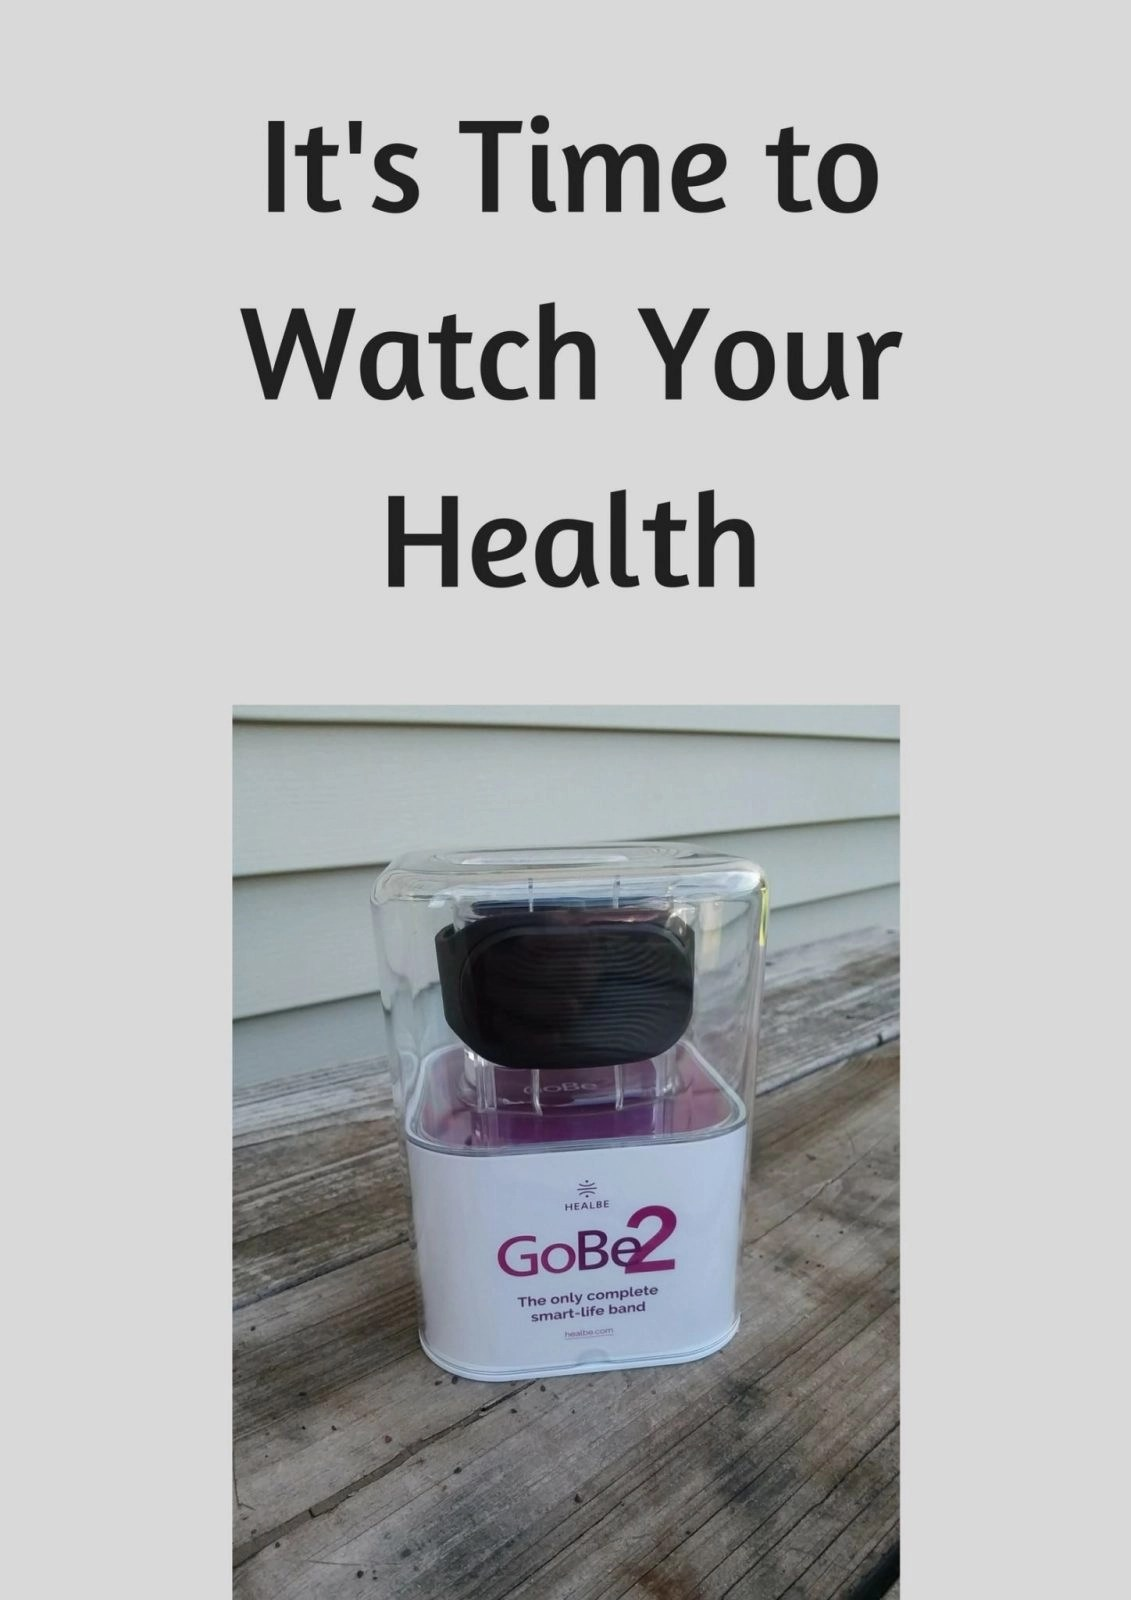 It's Time to Watch Your Health